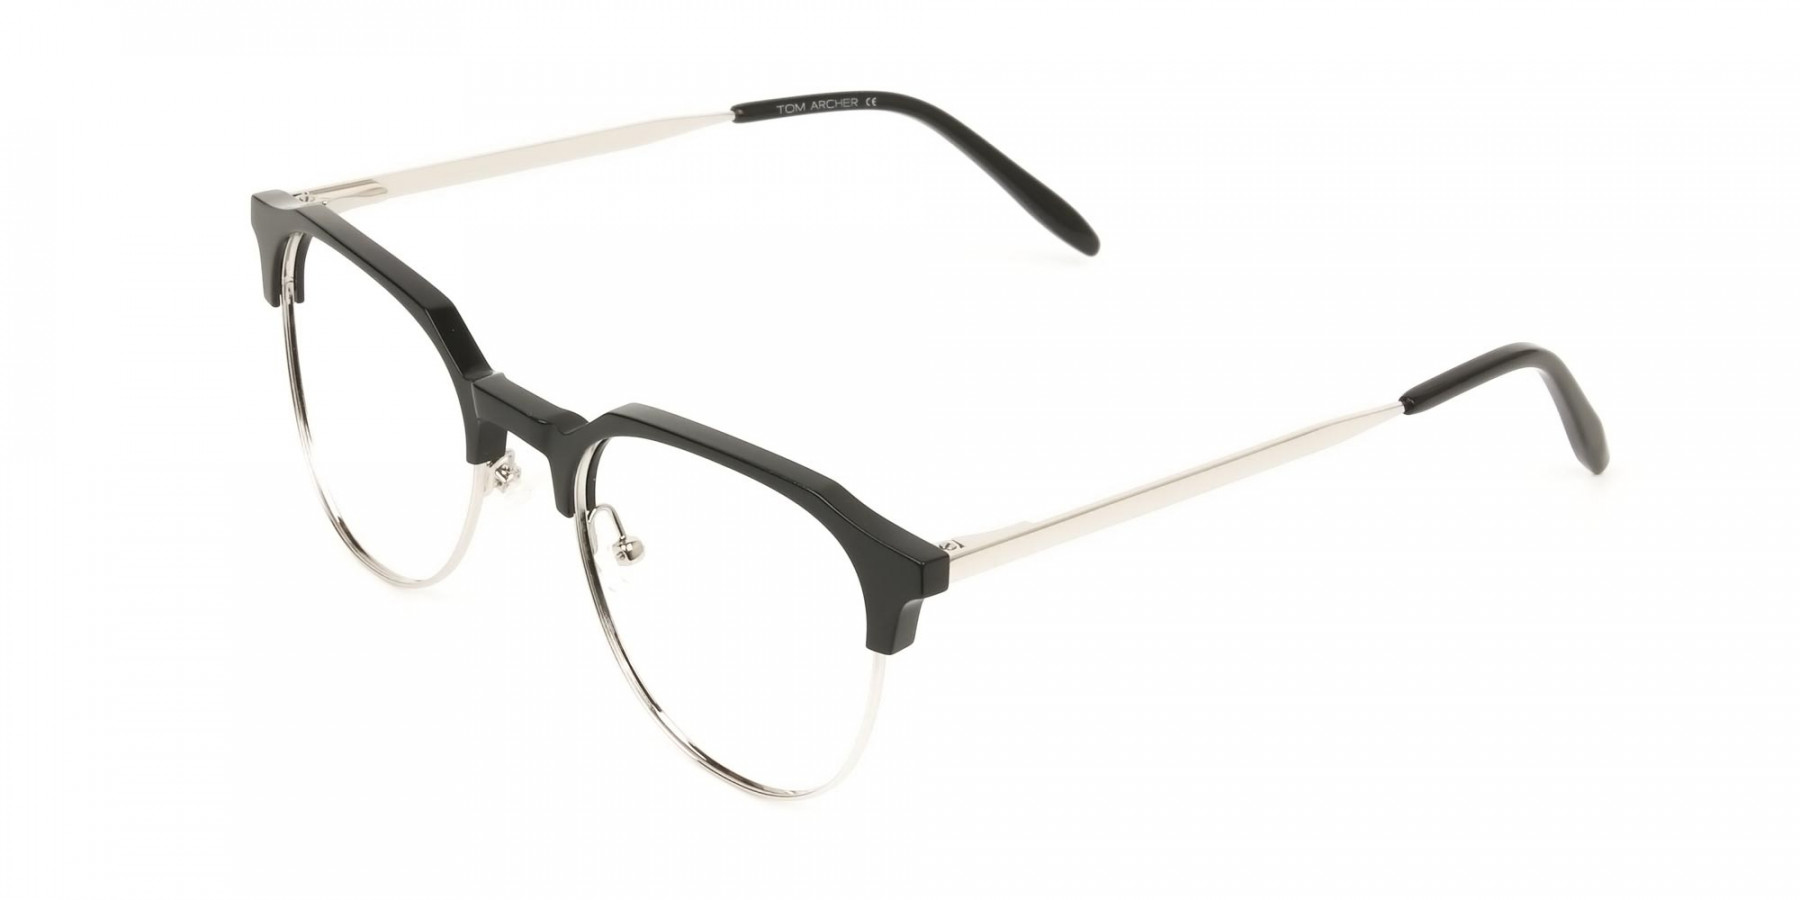 Clubmaster Eyeglasses in Black and Silver Round Frame - 1